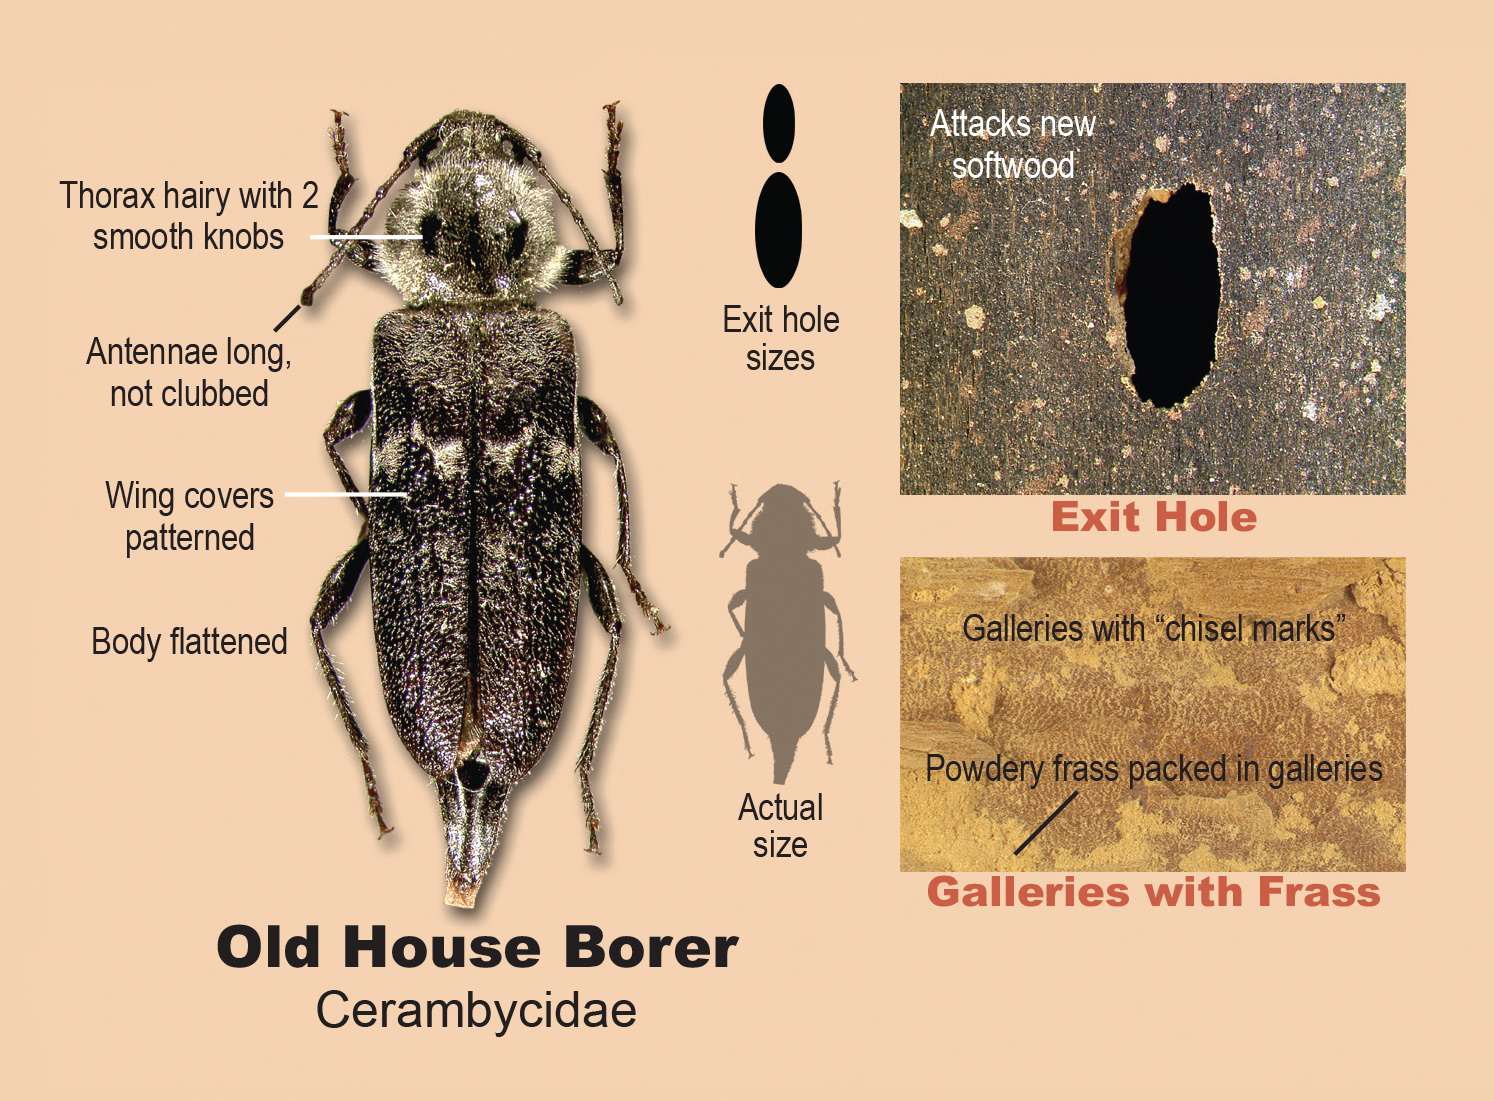 Old house borers